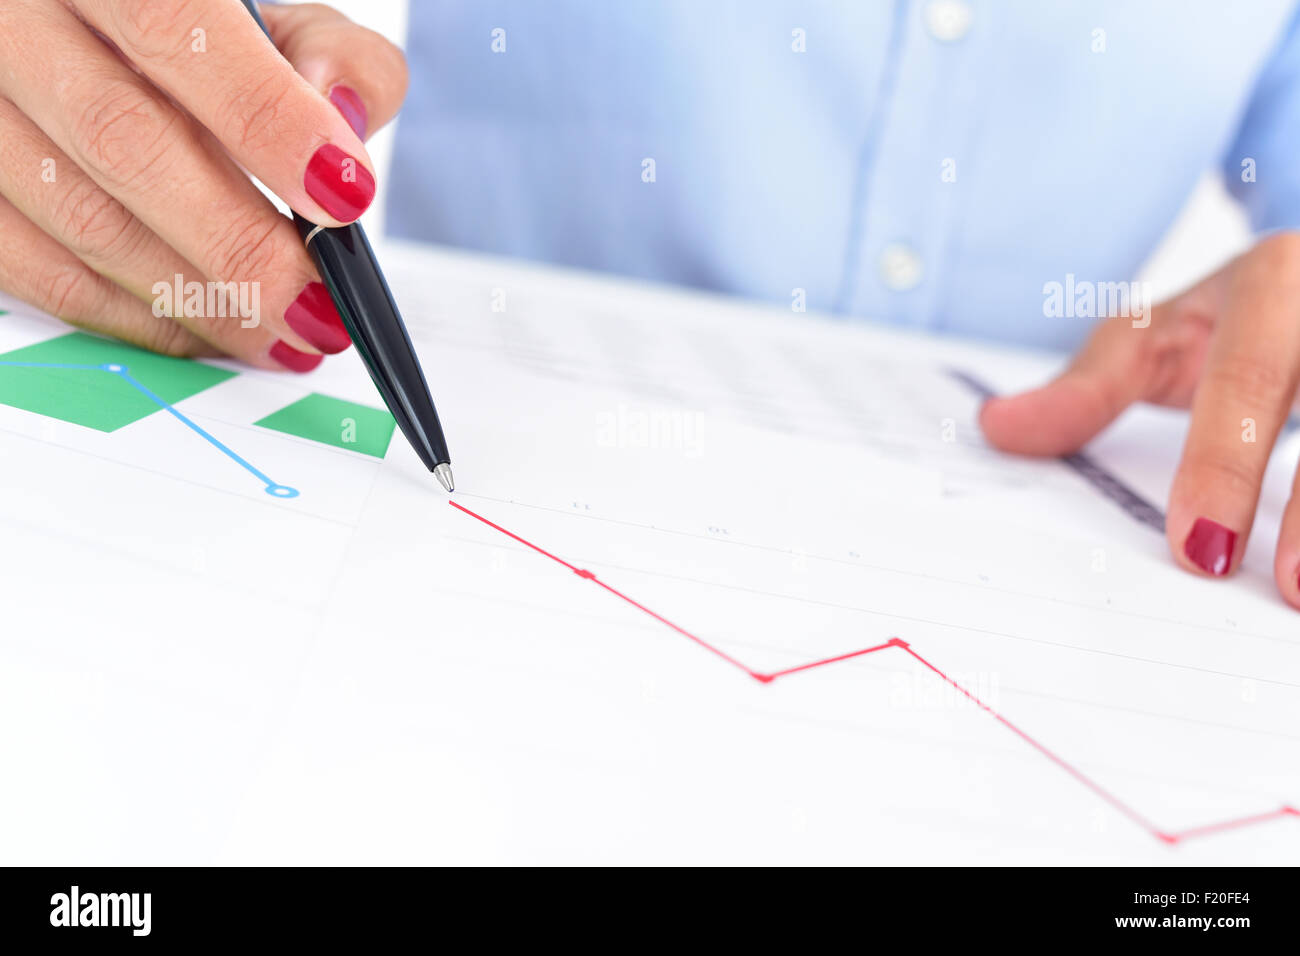 closeup of a businesswoman at her office desk full of graphs and charts, observes a chart with a downward trend - Stock Image